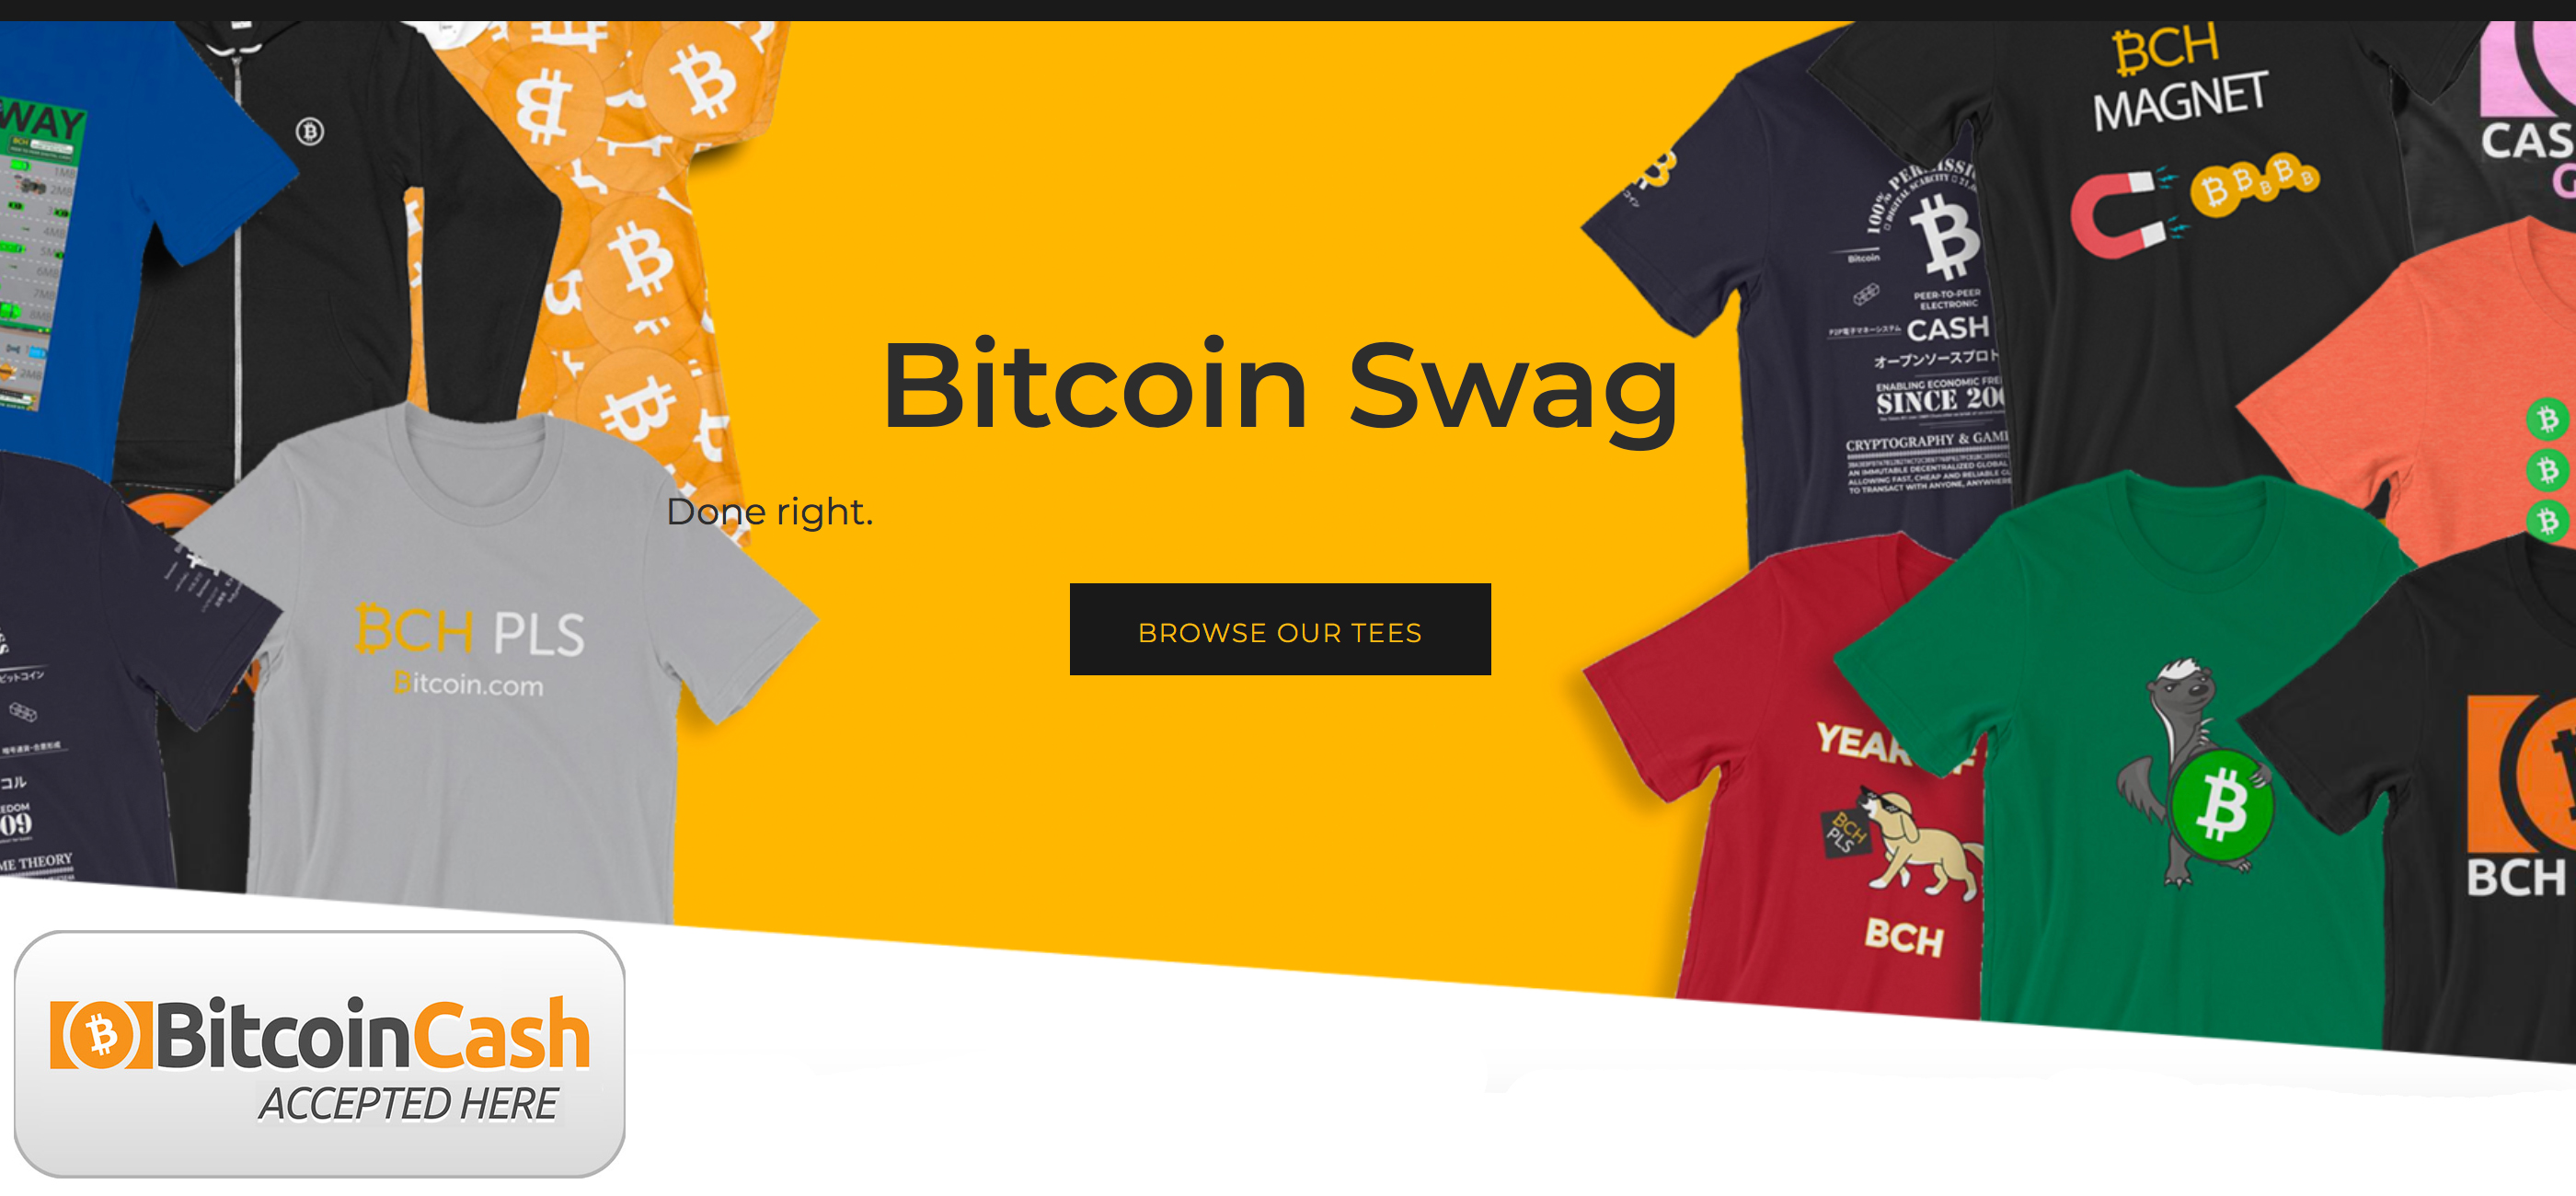 Bitcoin.com Store Now Offers Hundreds of Top-Branded Gift Cards